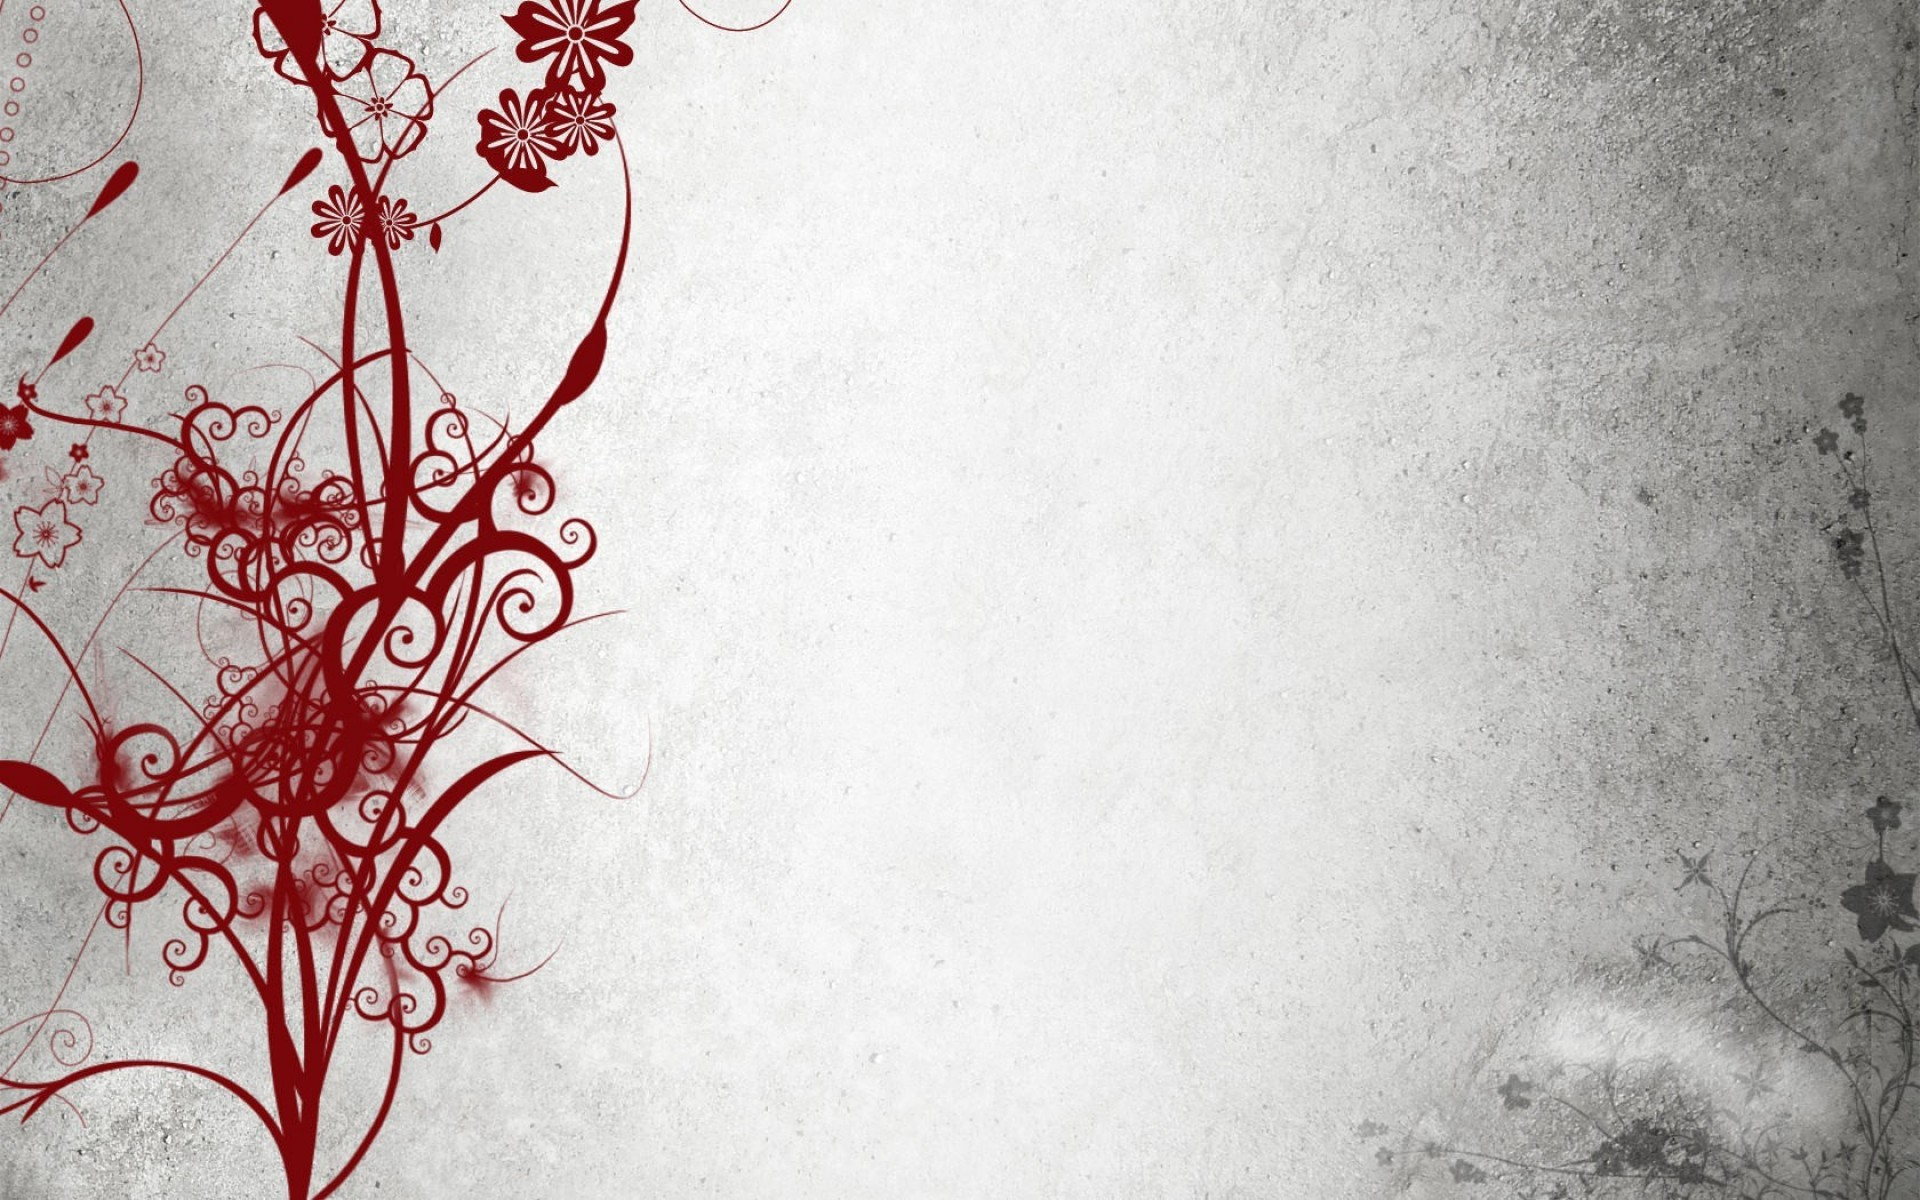 Grey Full HD Wallpaper and Background Image | 1920x1200 | ID:712406 for Simple White And Red Wallpaper Designs  599kxo